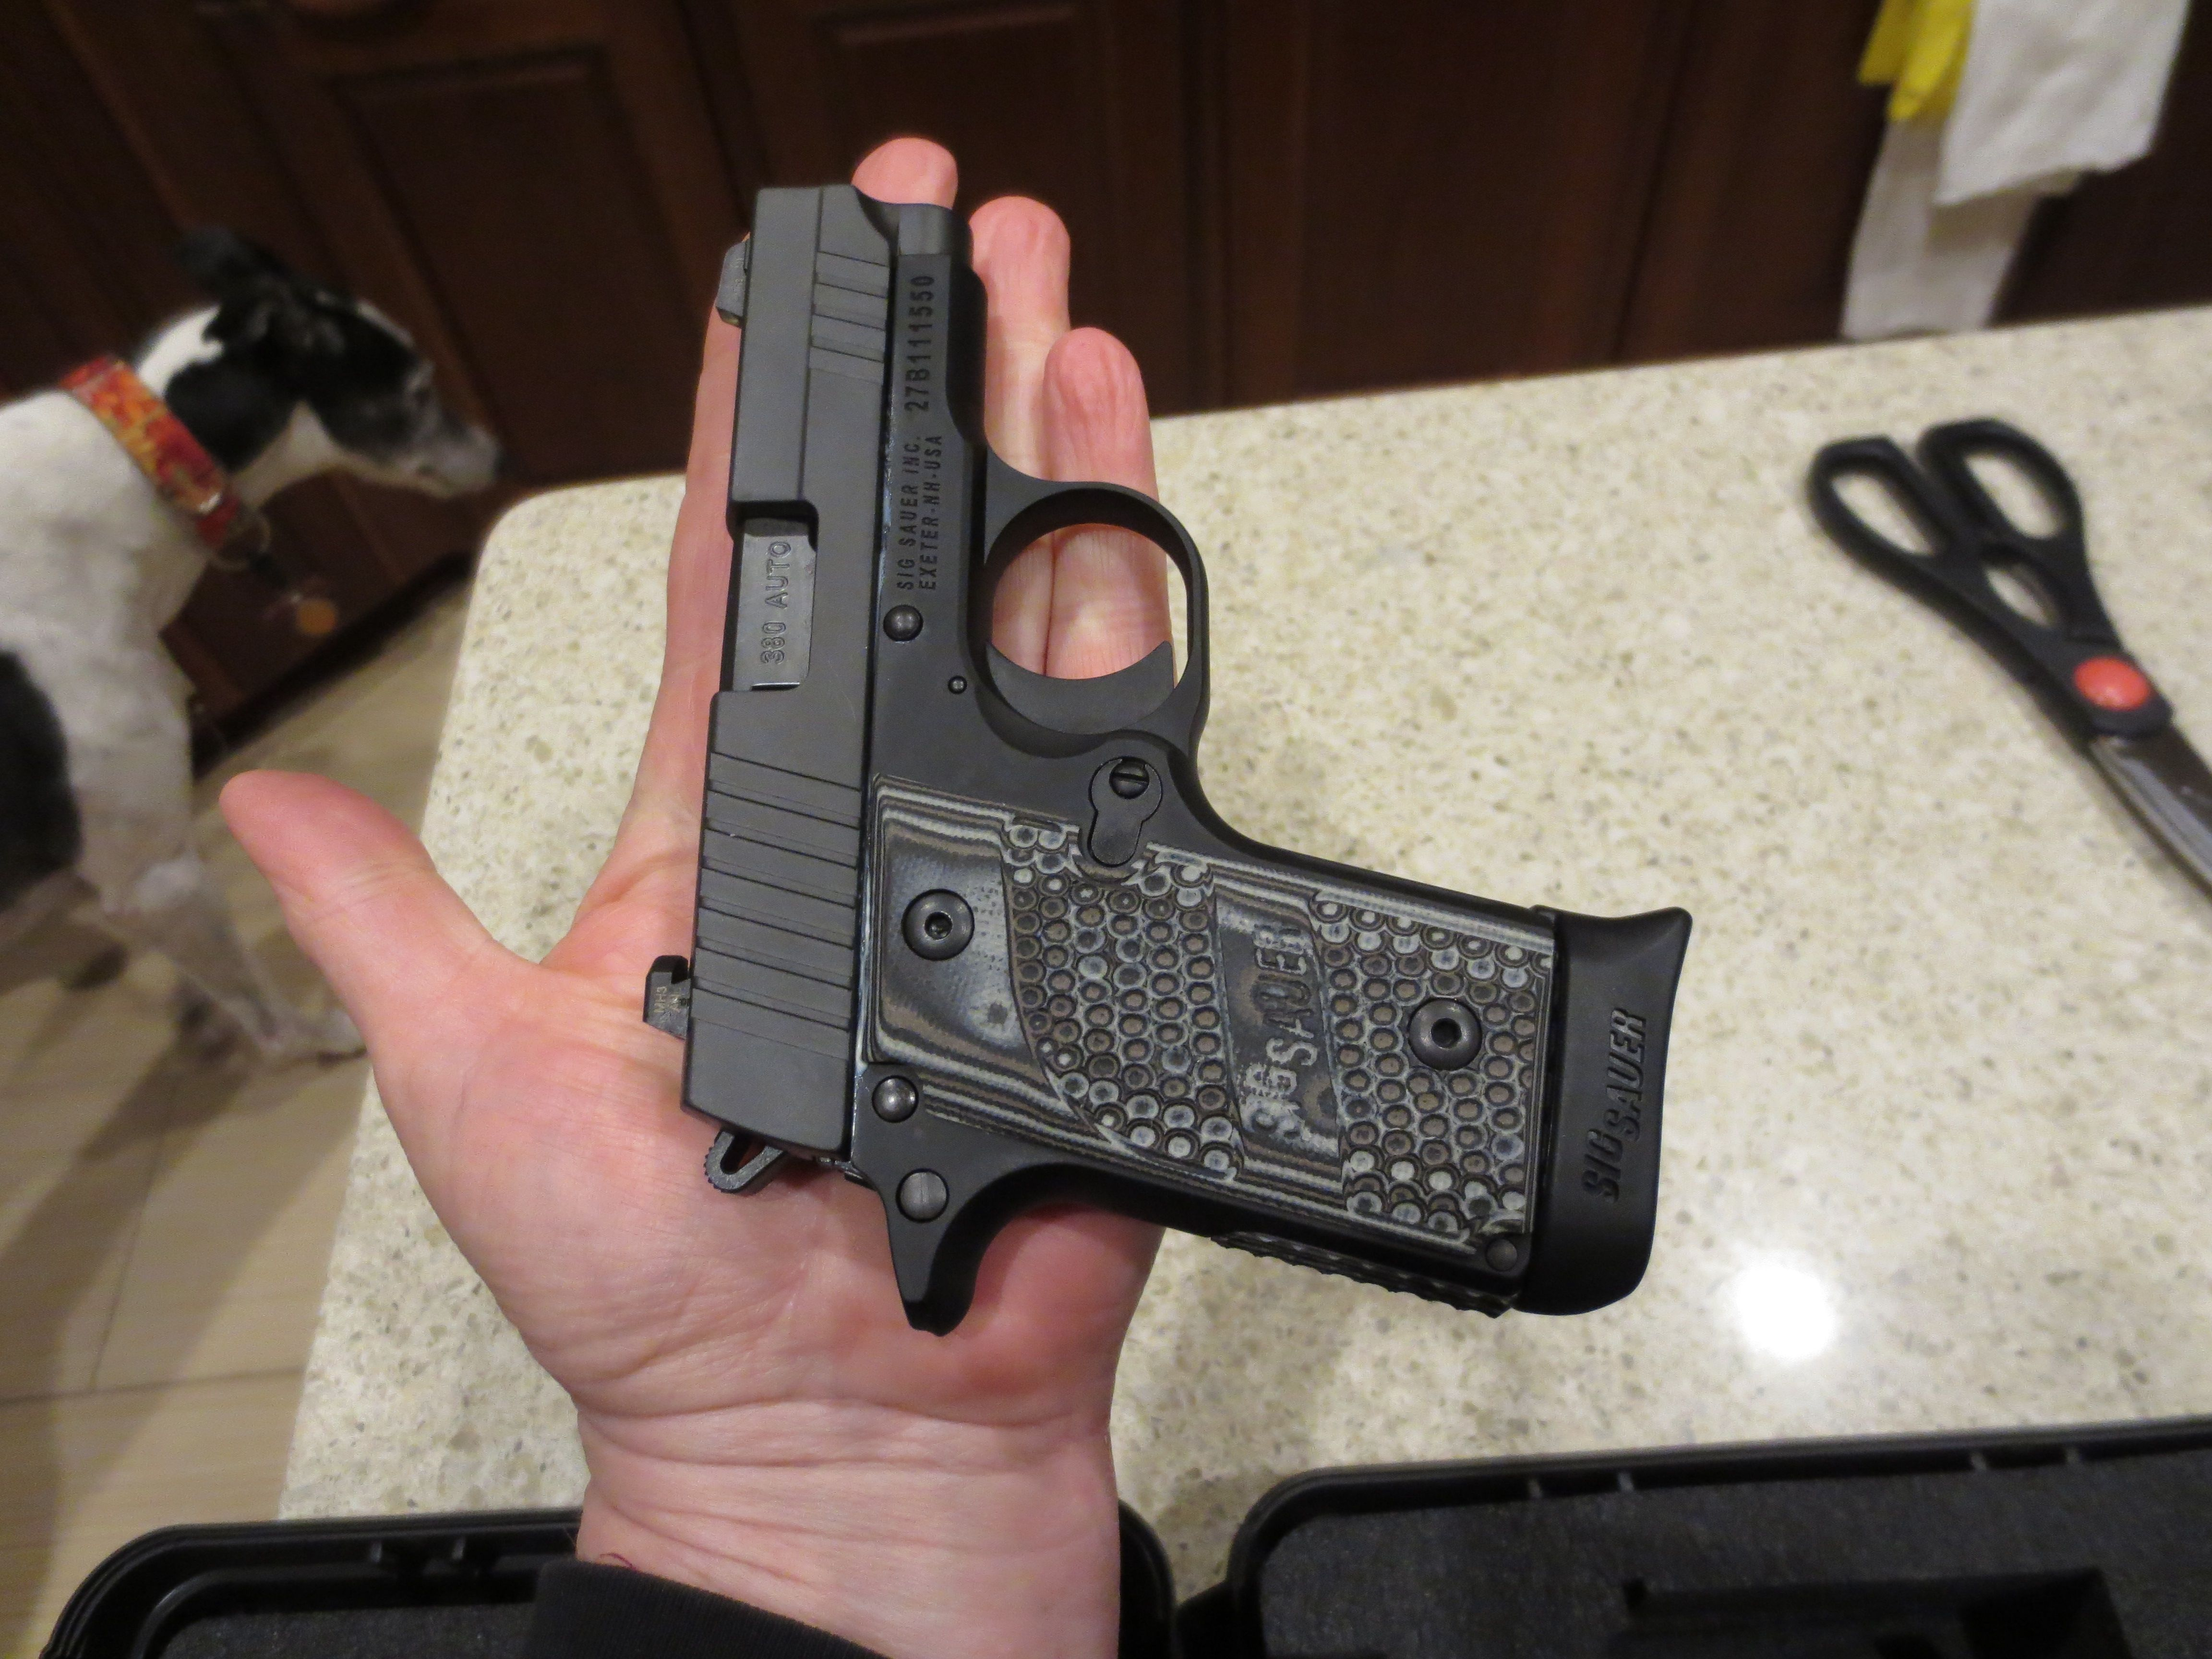 medium resolution of sig sauer p238 380 pistol with an extended magazine so tiny my hand almost hides it i love this little gun oh and those grips